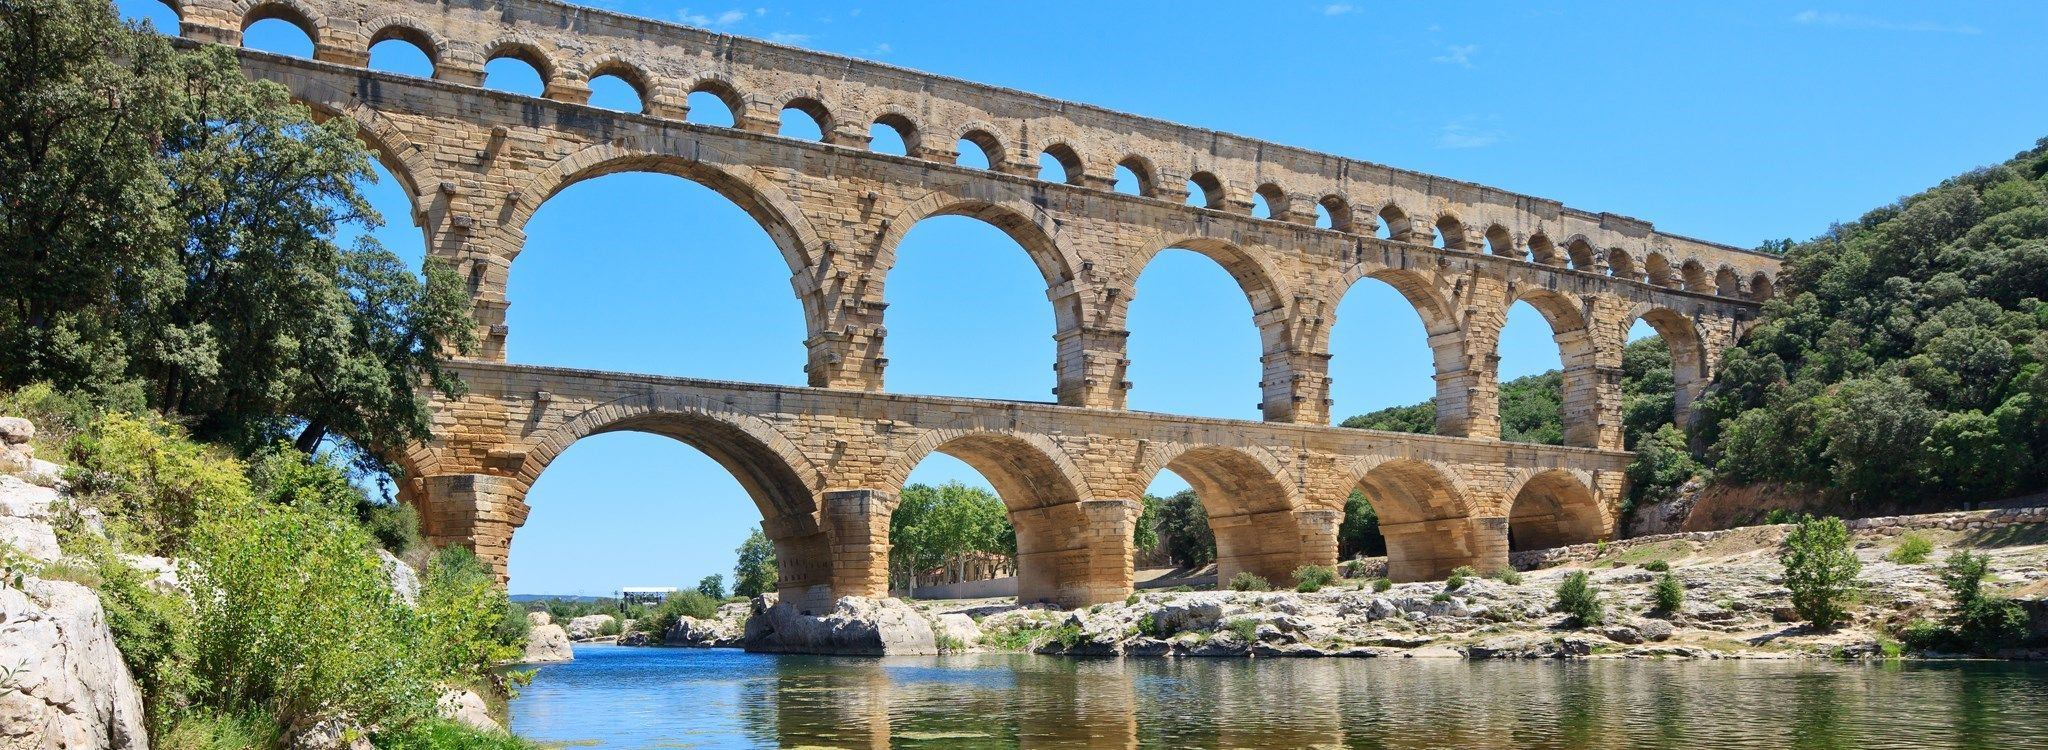 The famous Roman aqueduct the Pont du Gard Ancient Structures